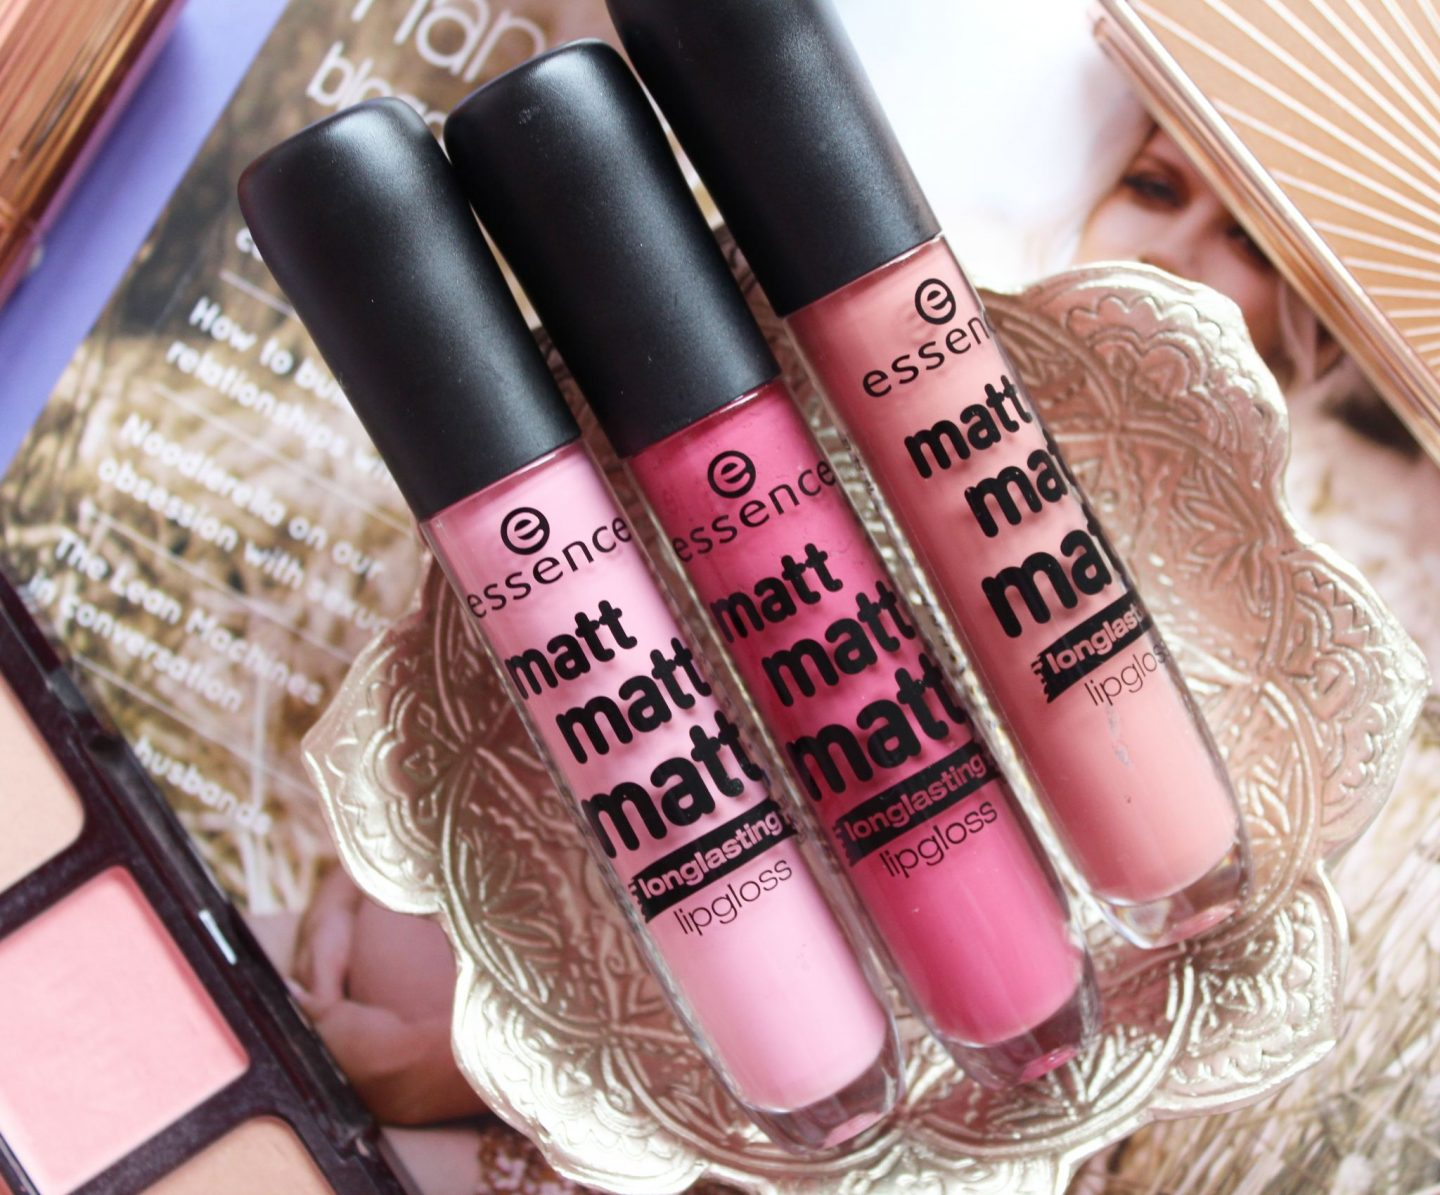 Essence Matt Matt Matt Longlasting Lipgloss Collection